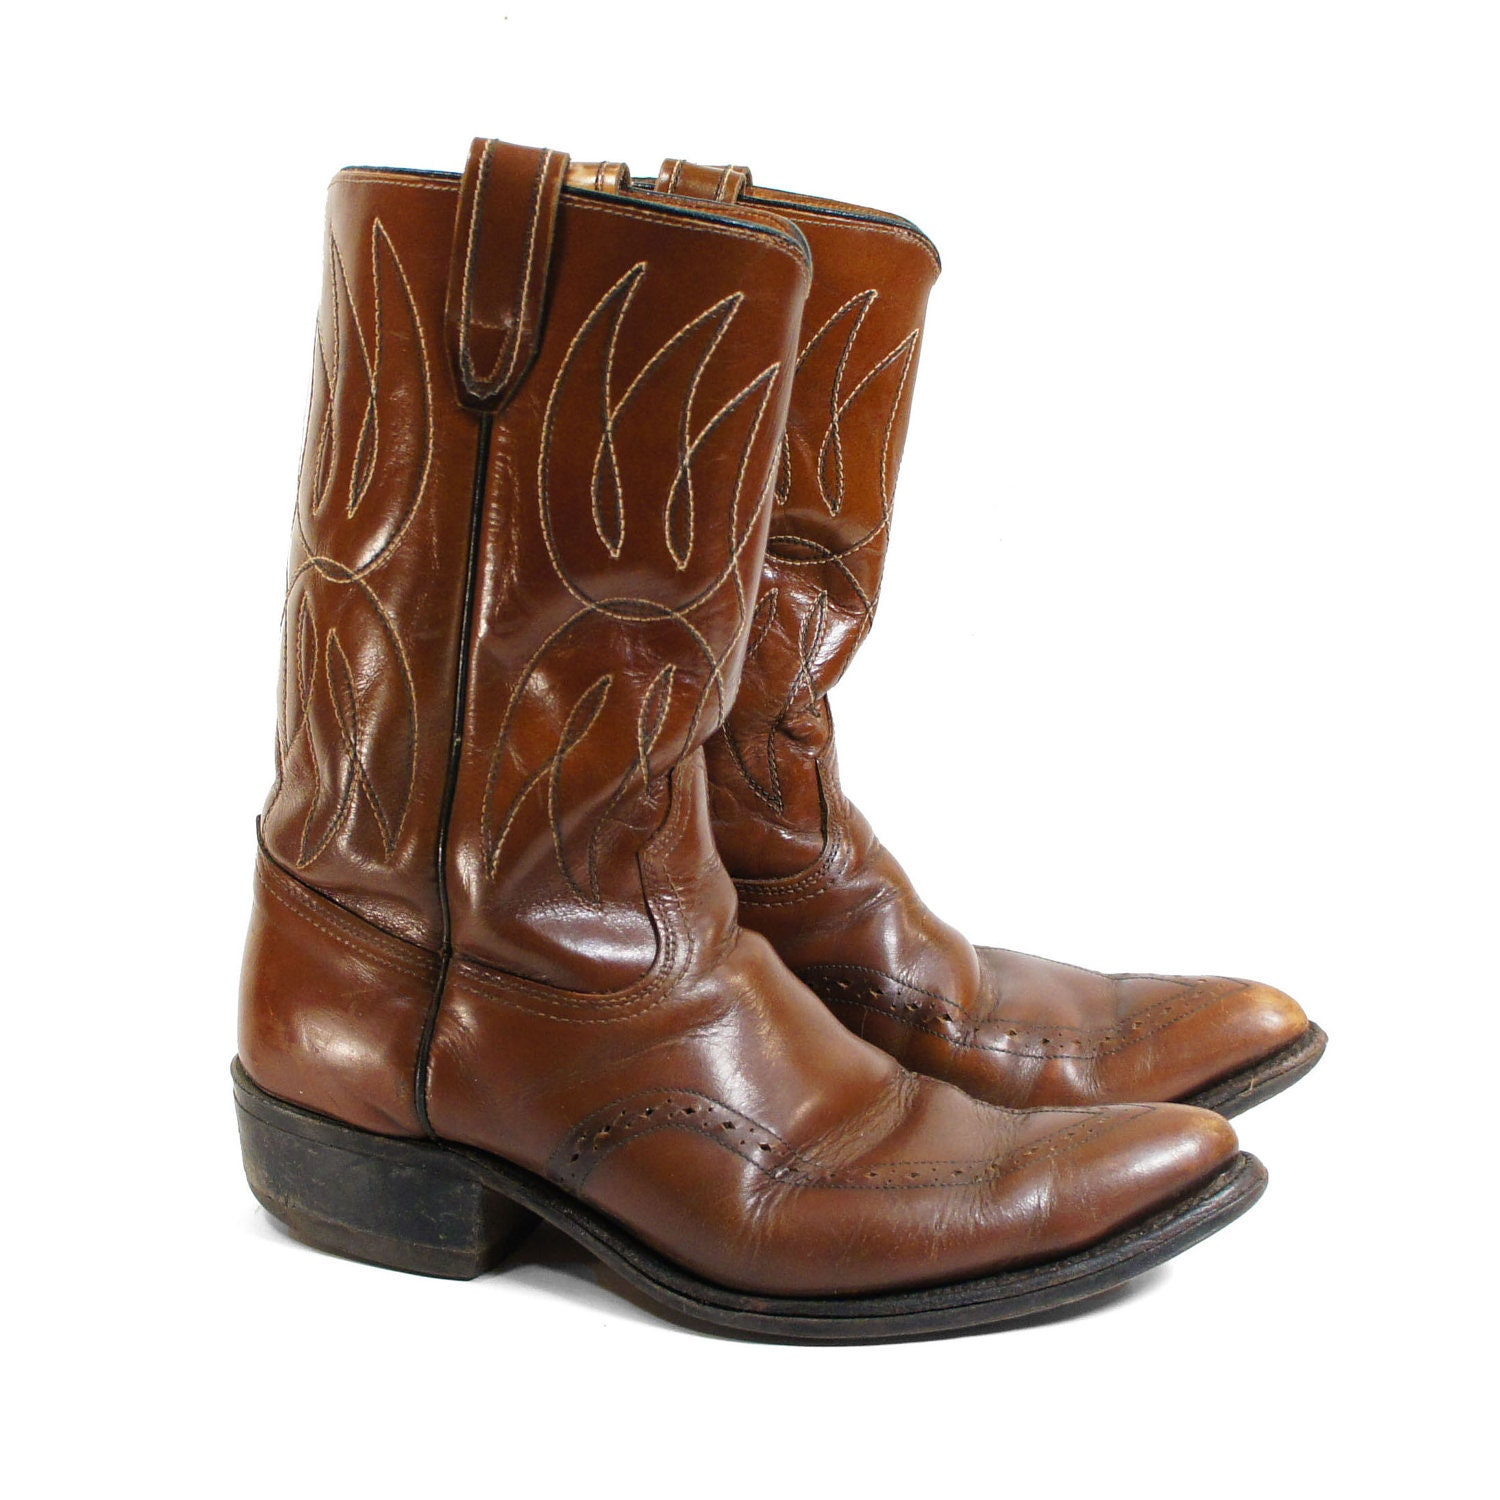 Online shoes Where can i buy cheap cowgirl boots